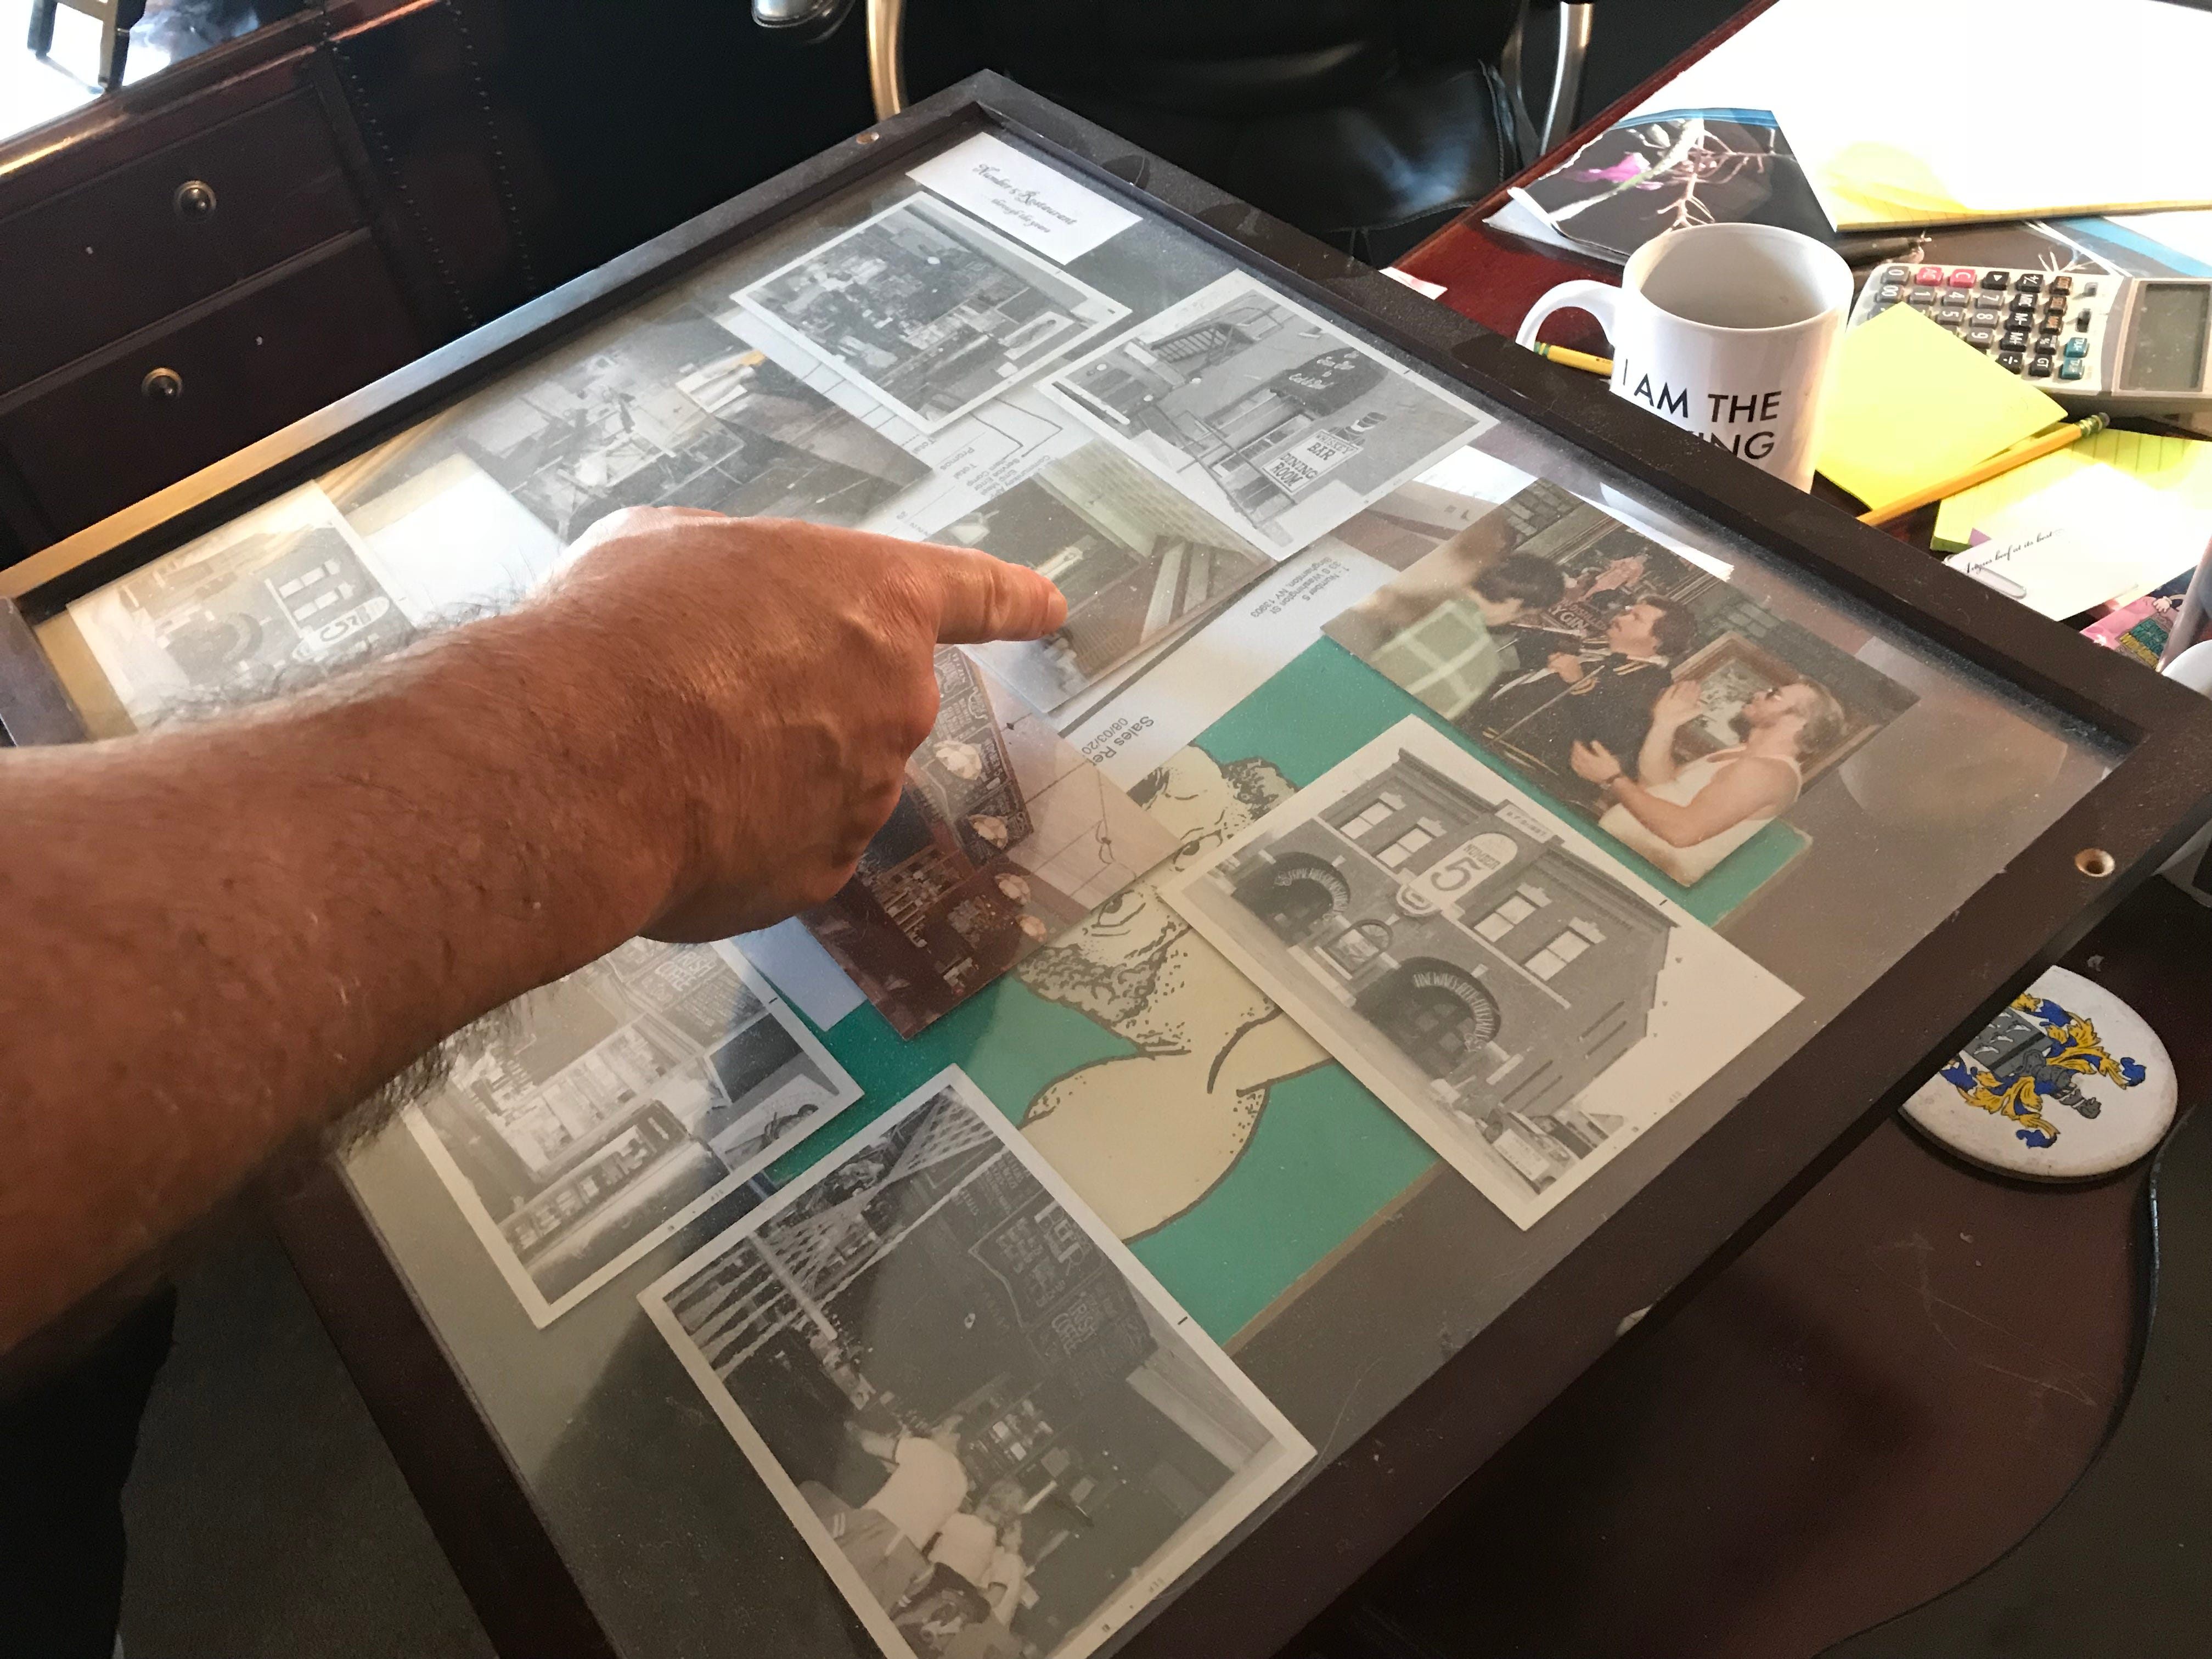 Jim McCoy, owner of the Number 5 Restaurant in Binghamton, has saved a collection of photographs from his 40 years as the restaurant's owner.